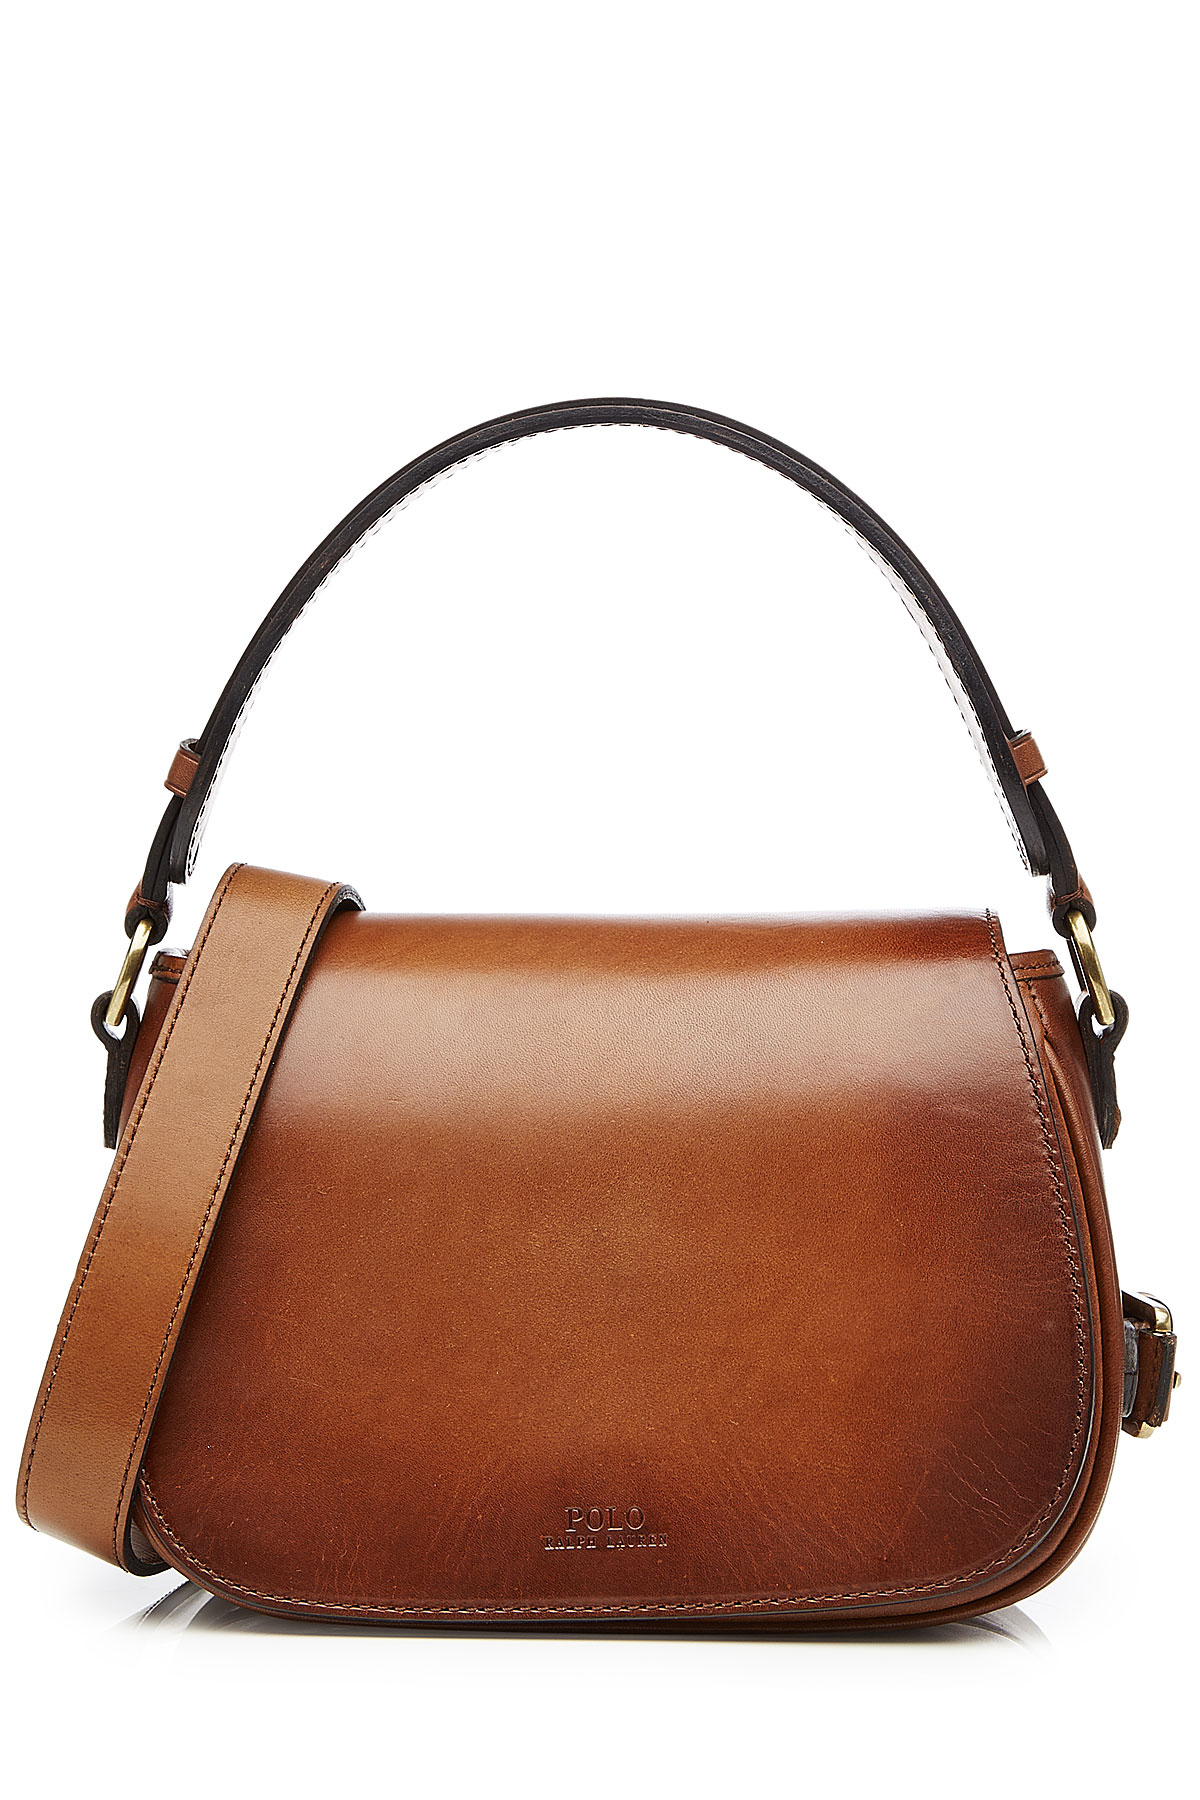 6bc12871534c Polo Ralph Lauren Leather Saddle Bag - Brown - Lyst